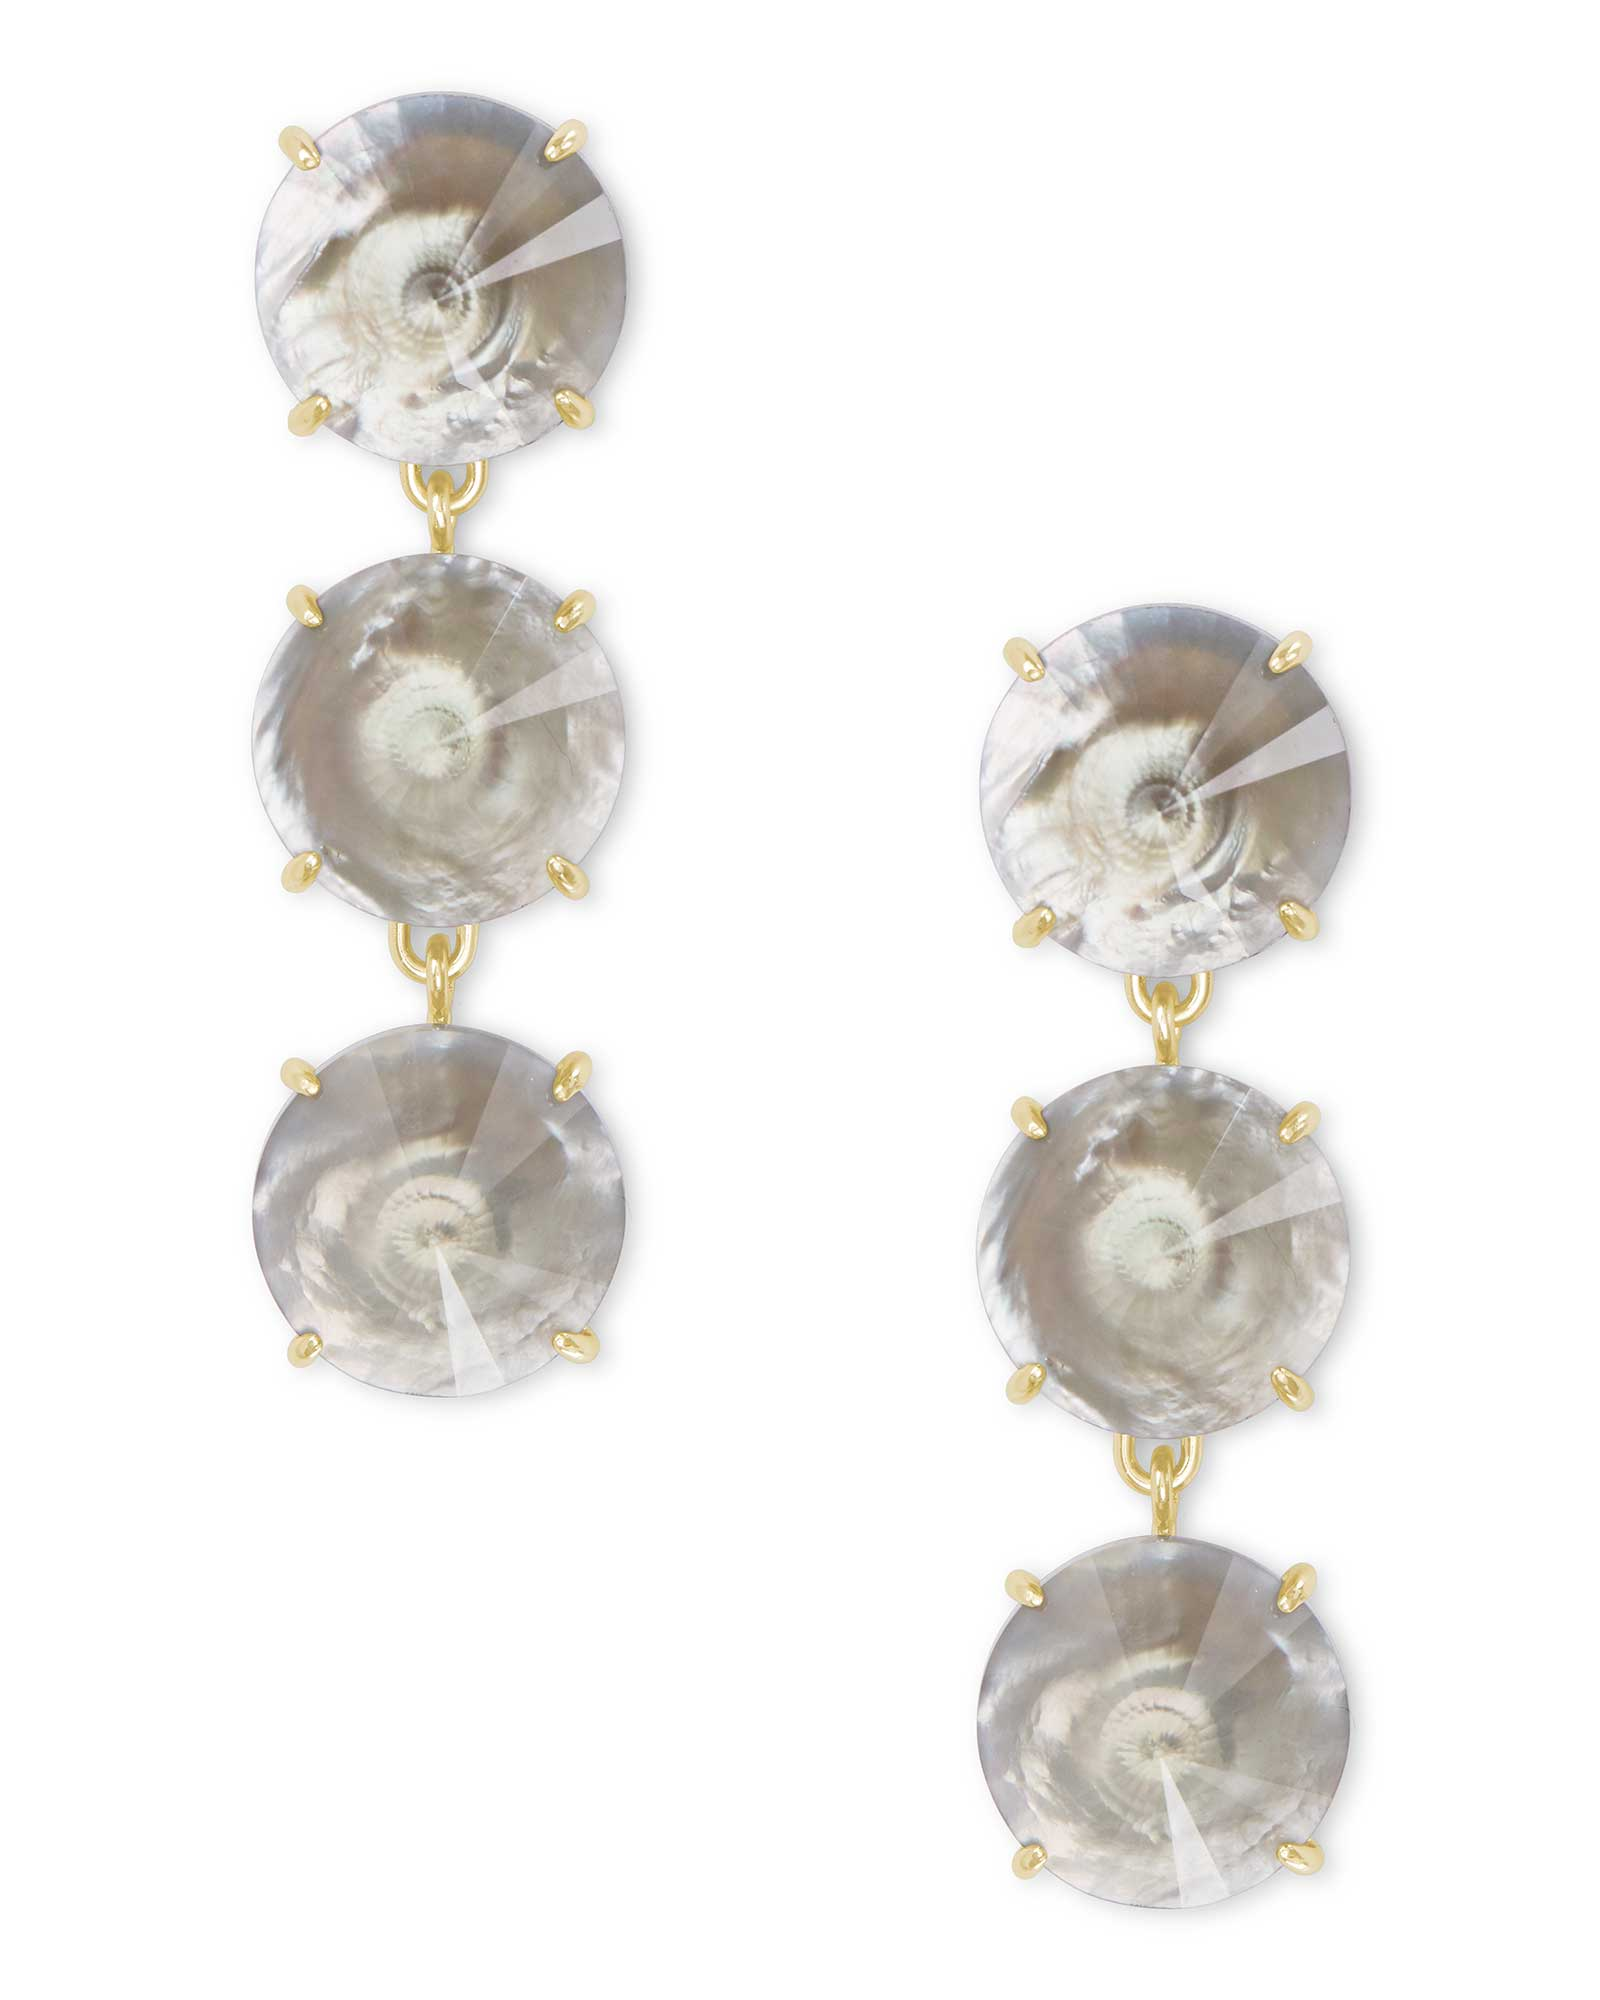 Jolie Gold Statement Earrings in Gray Illusion